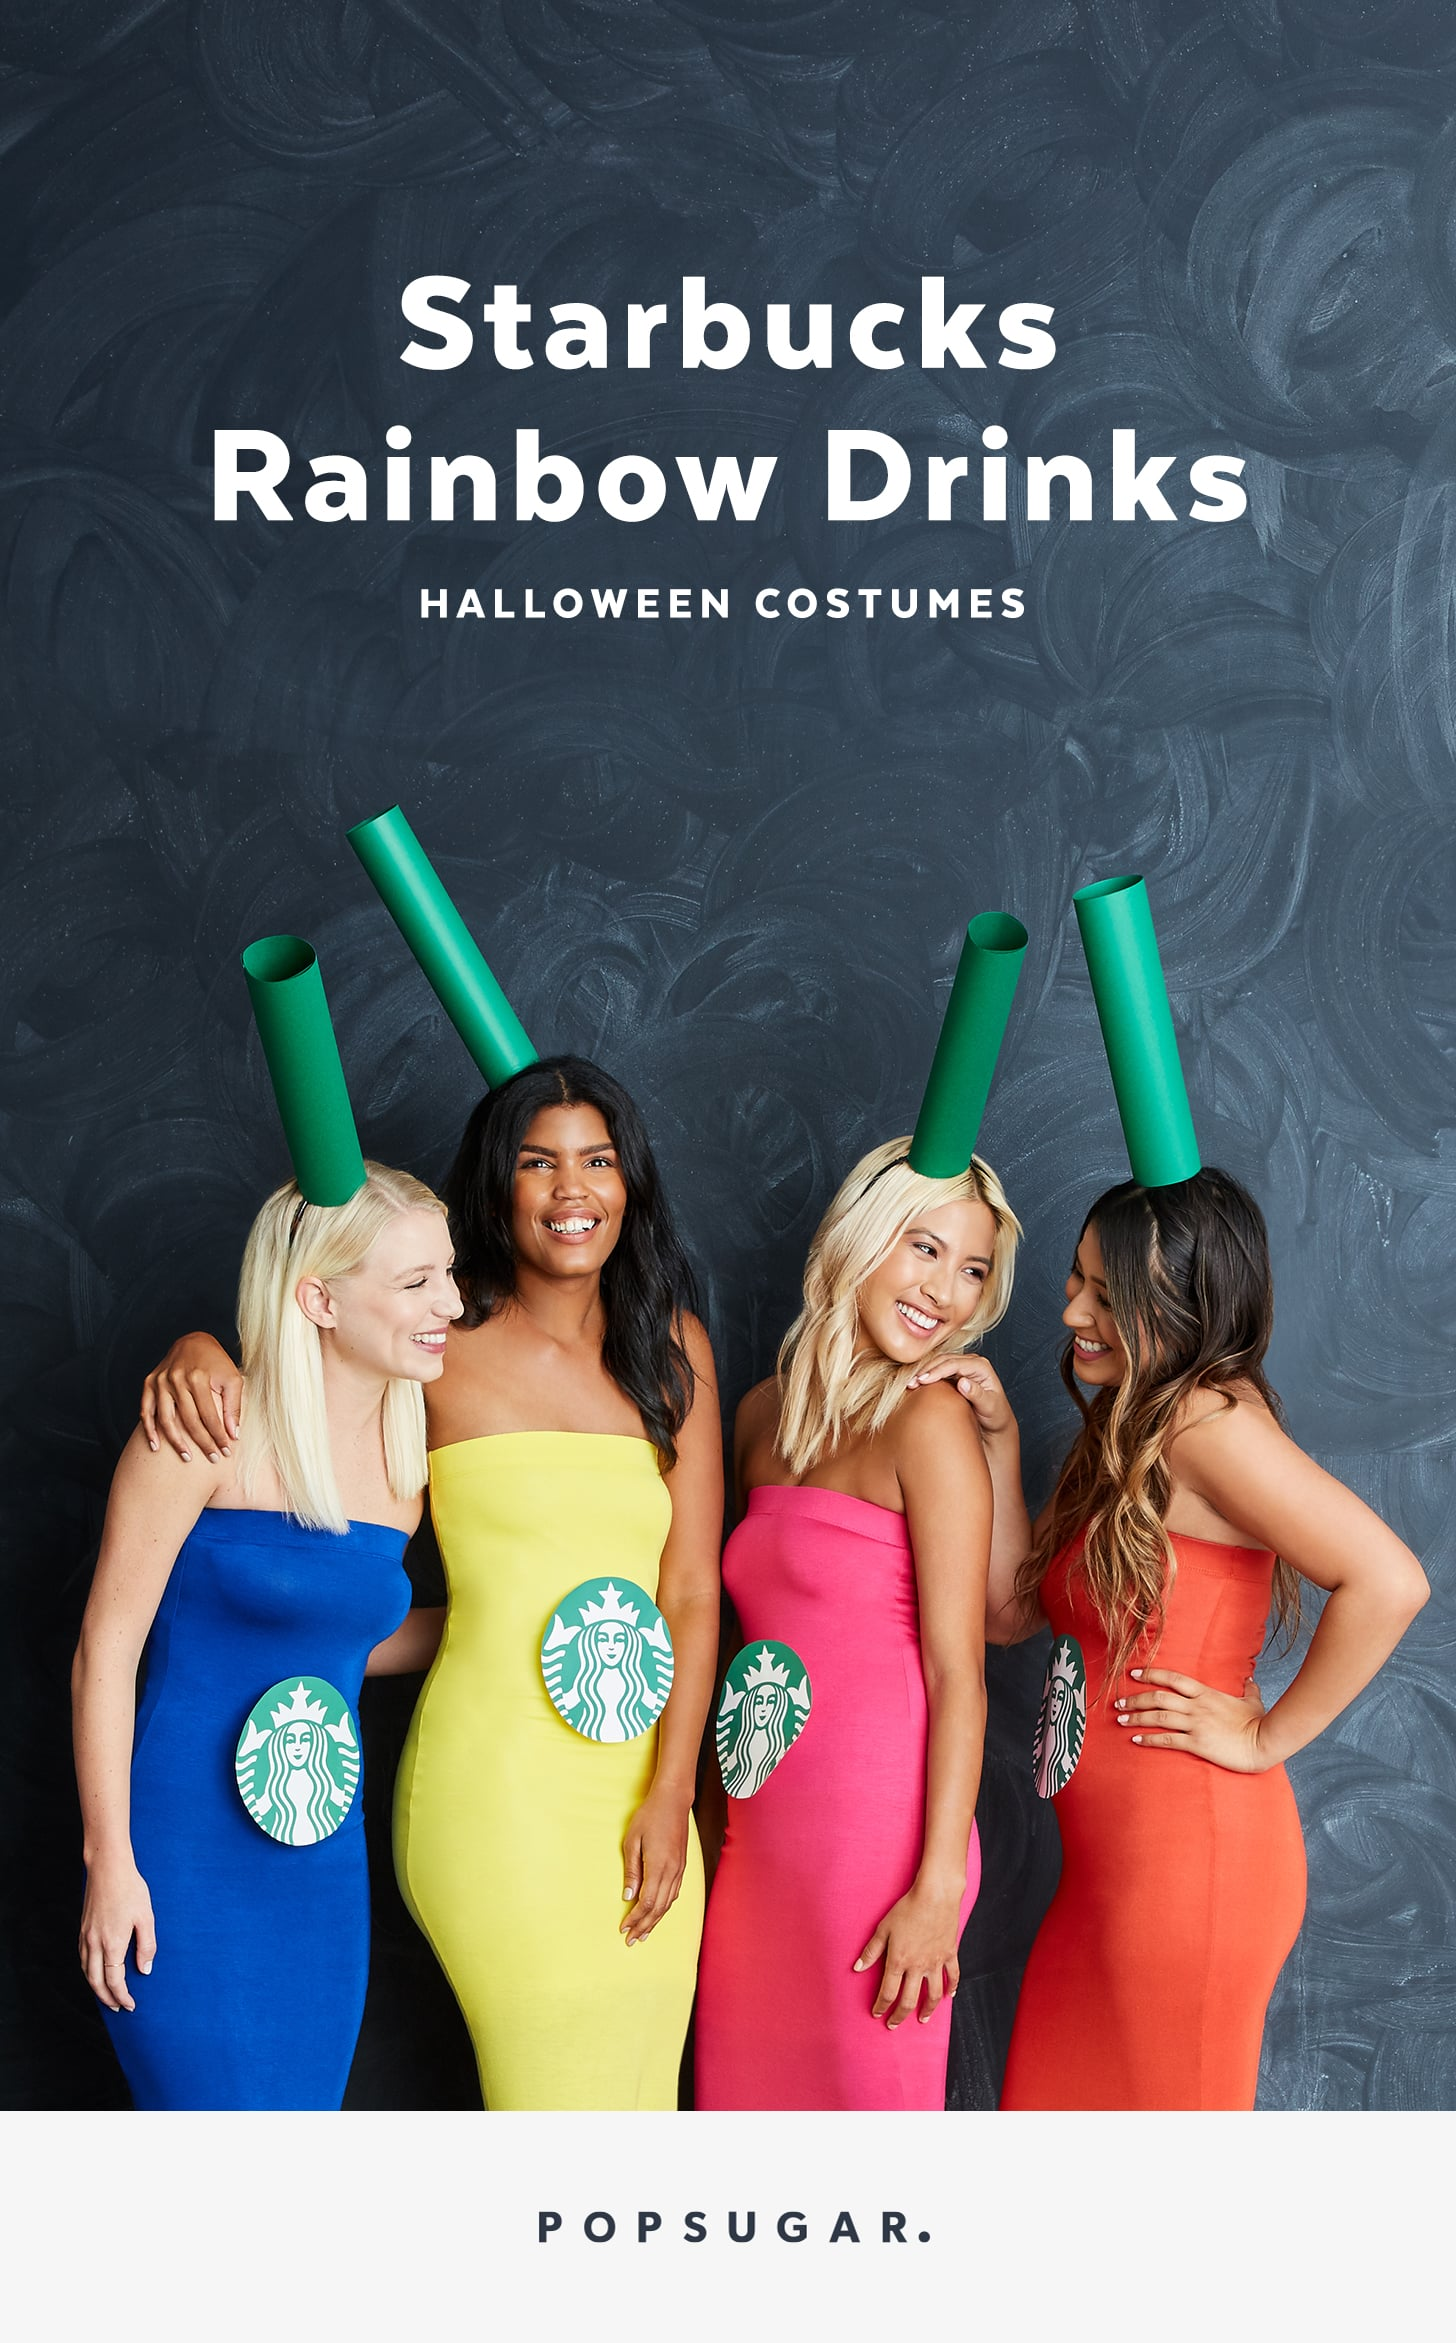 Diy starbucks group halloween costume popsugar smart living did somebody order the perfect costume for a group of girlfriends because weve got your new favorite halloween idea all ready to diy solutioingenieria Image collections